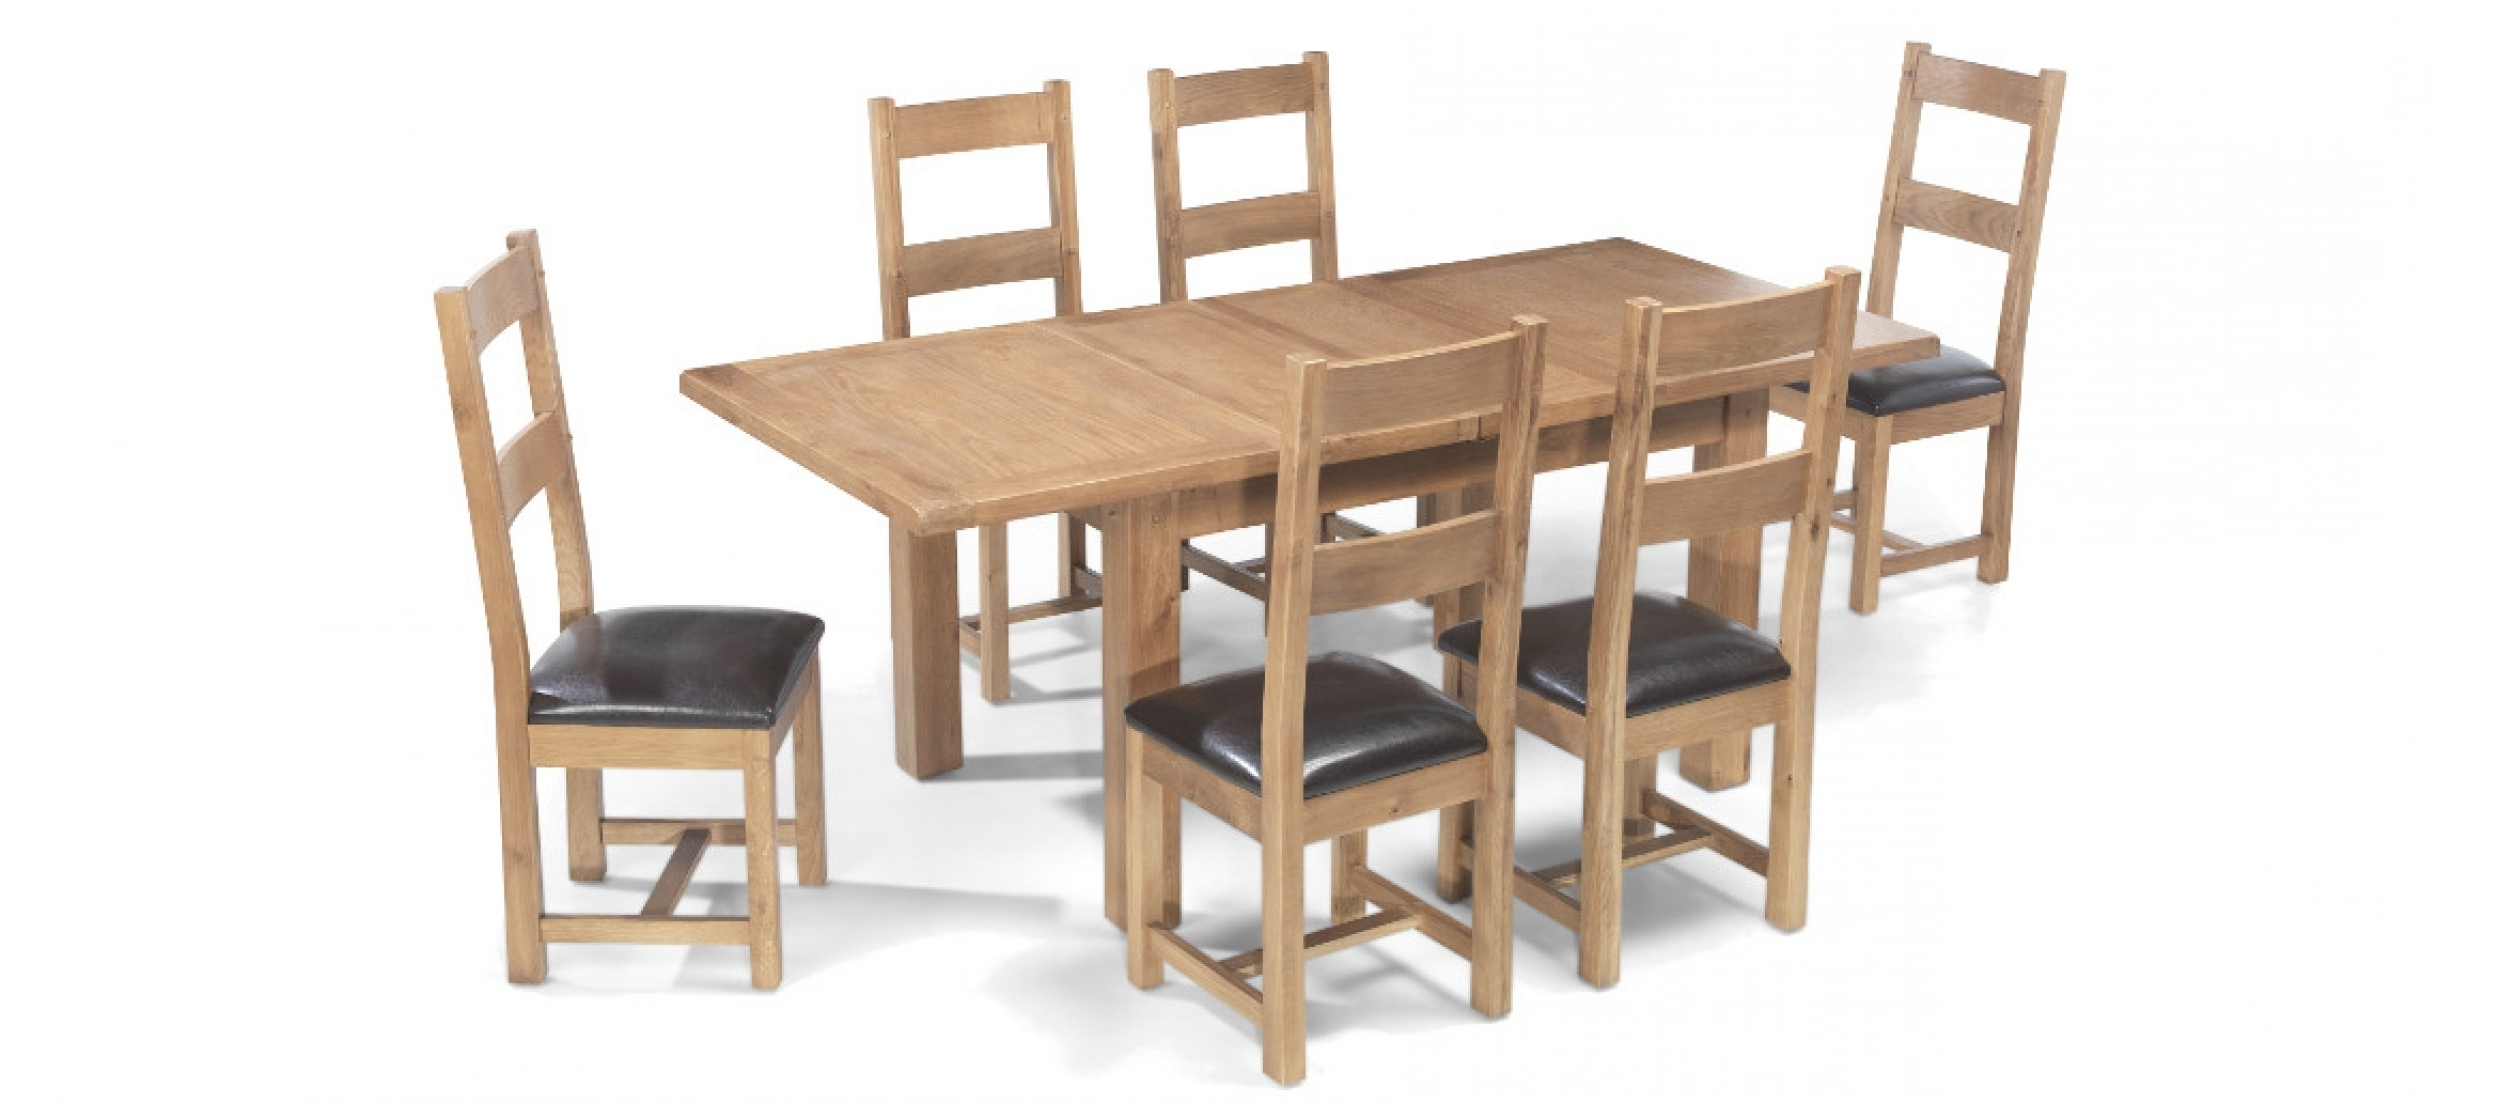 Quercus Regarding Trendy Solid Oak Dining Tables And 6 Chairs (Gallery 8 of 25)